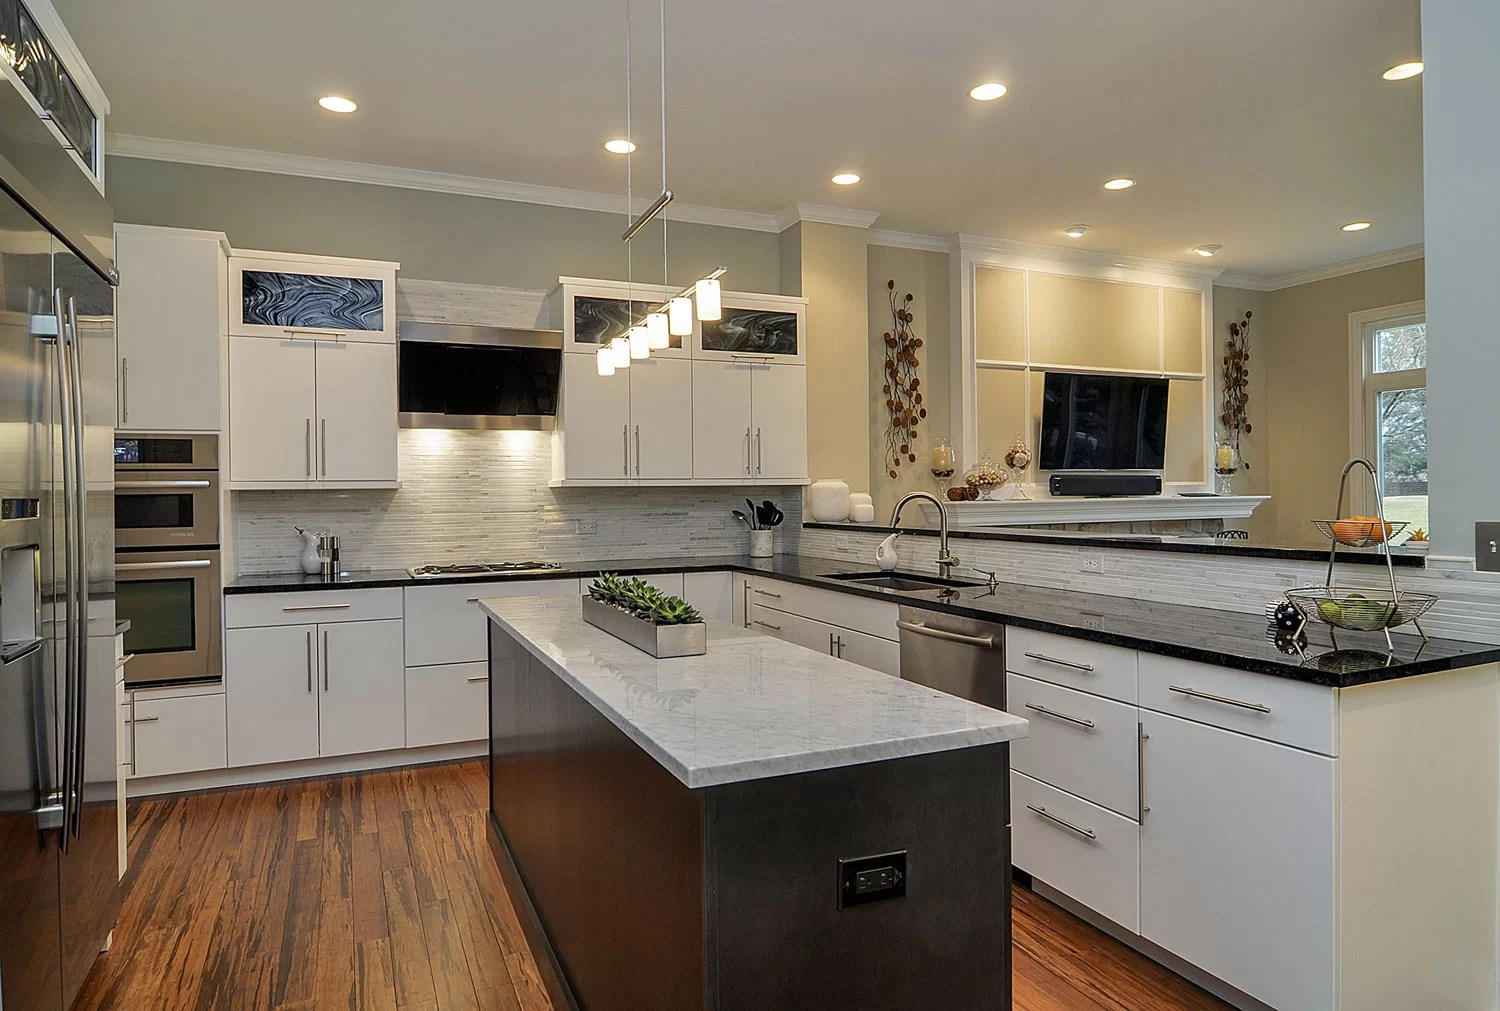 Doug & Natalie's Kitchen Remodel Pictures | Home ... on Kitchen Remodeling Ideas  id=43773